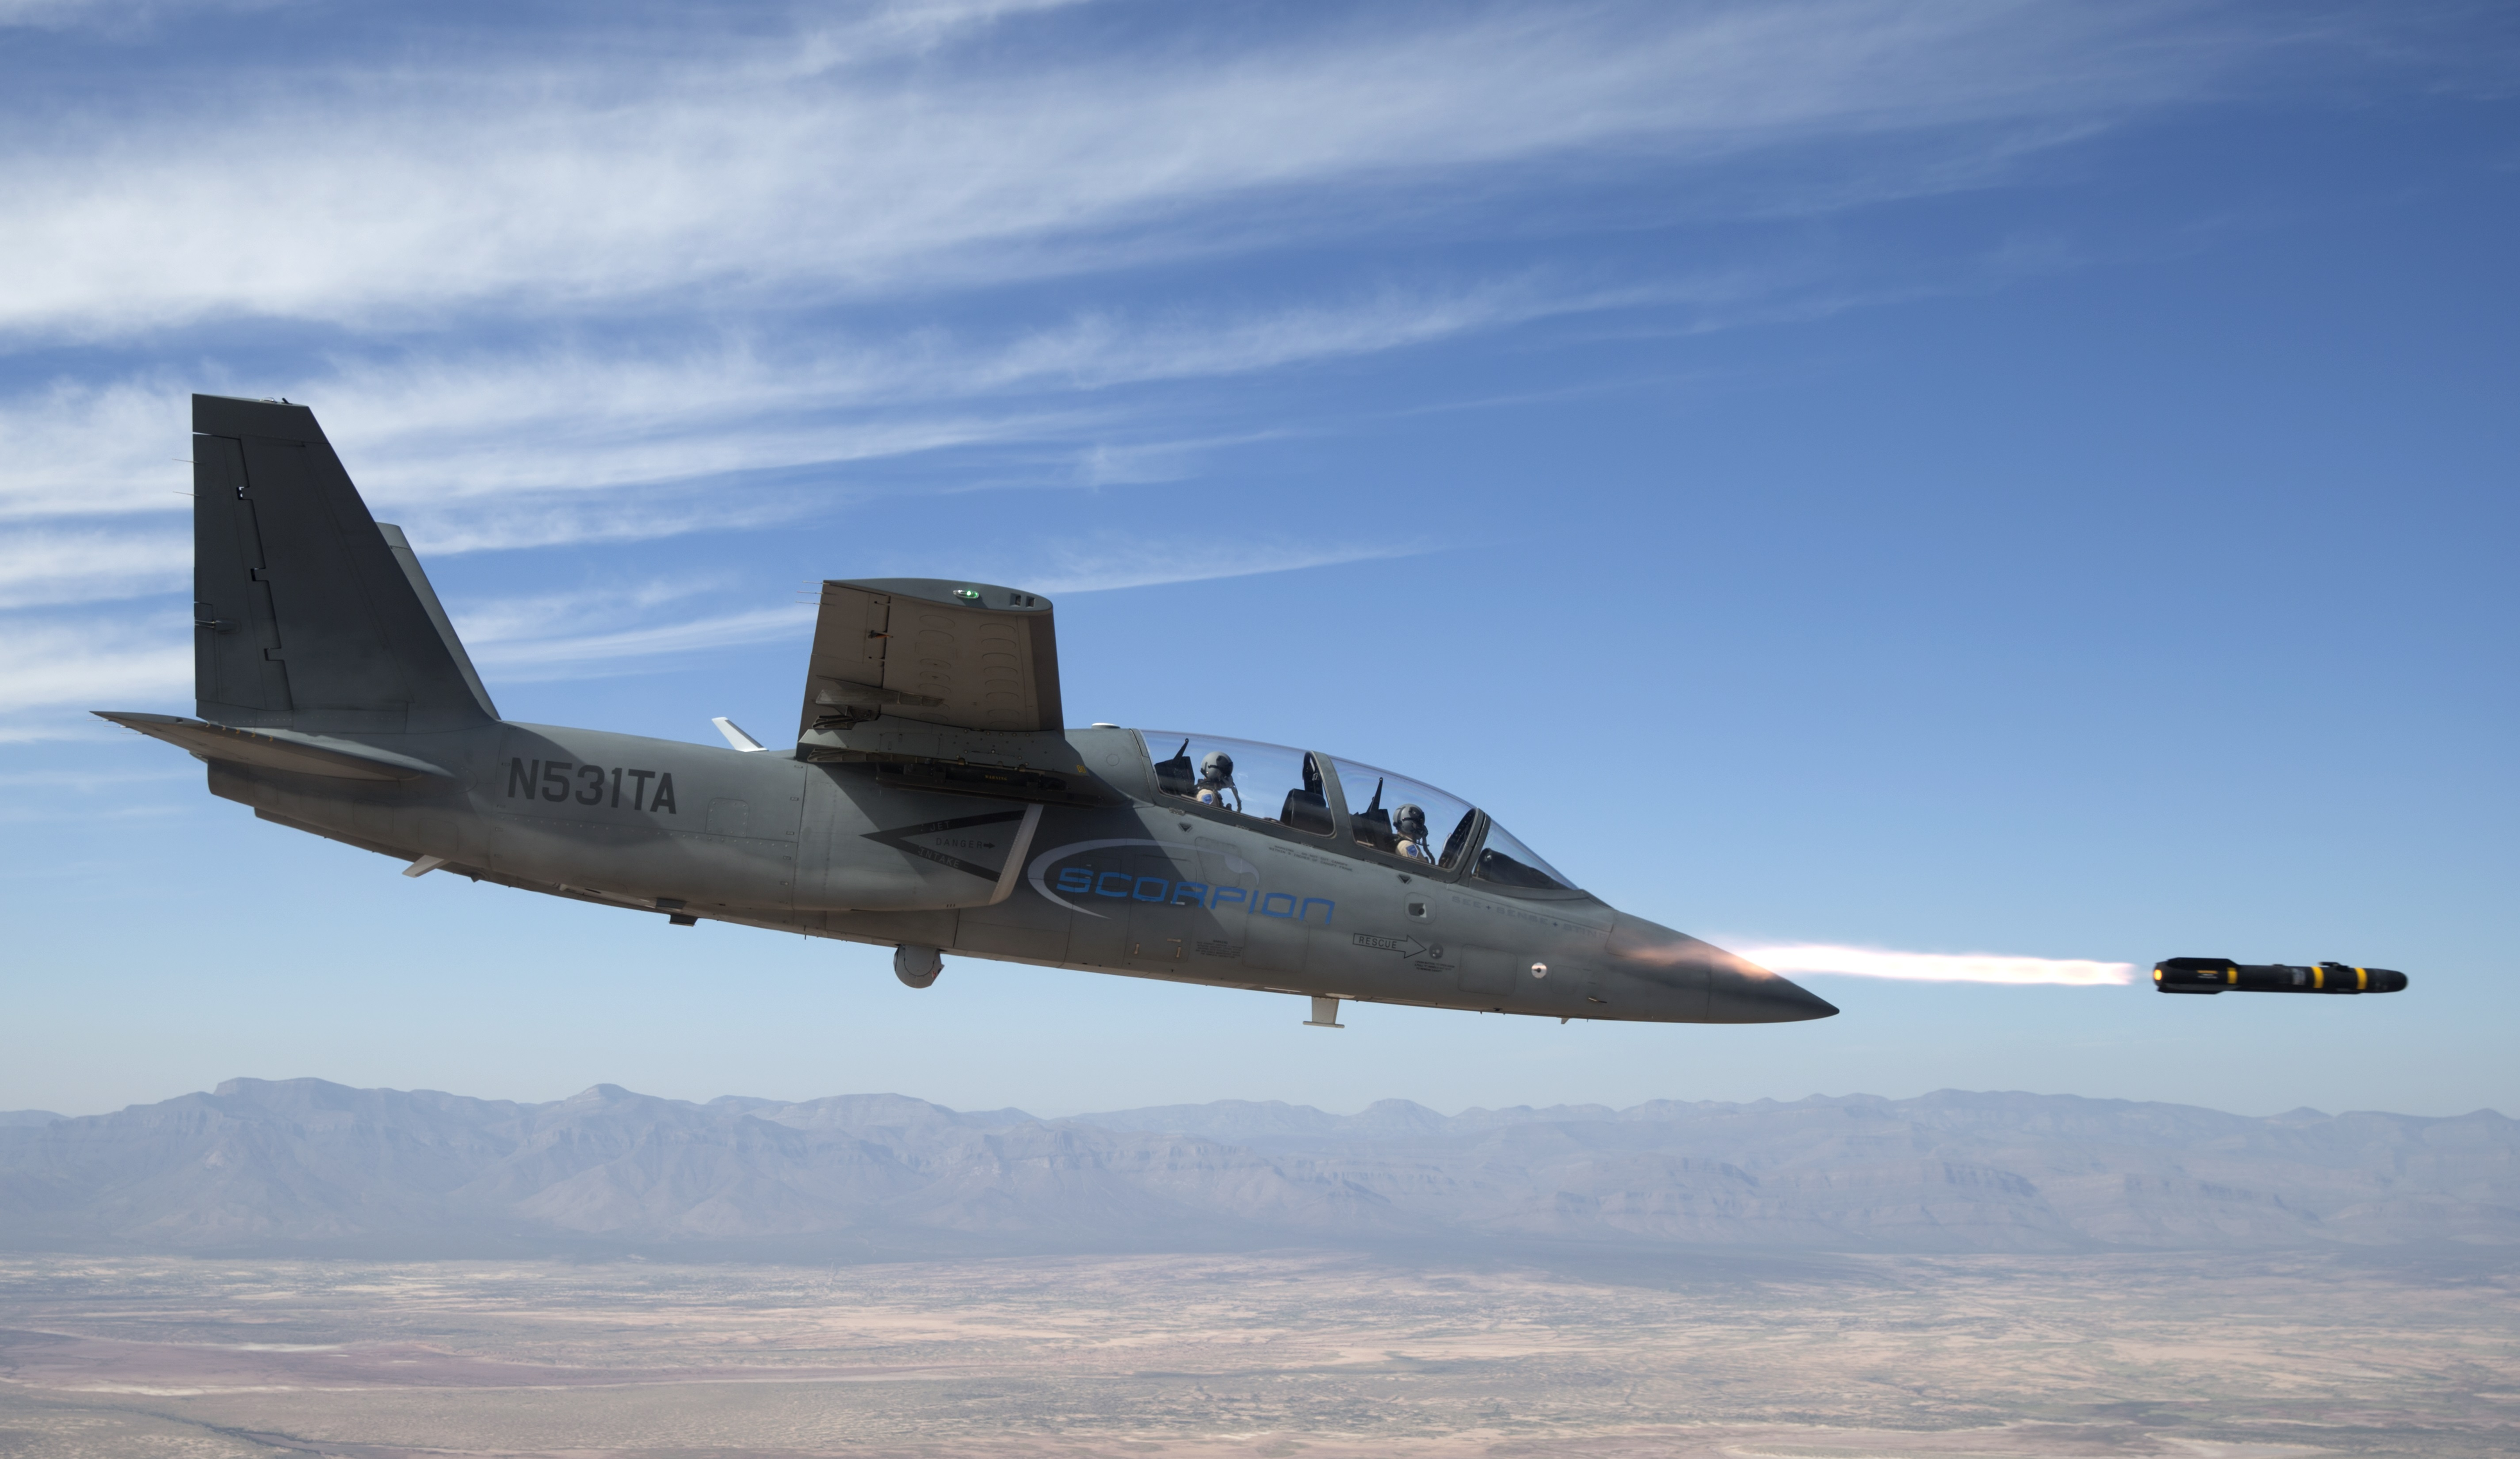 Textron : Scorpion jet successfully completes first weapons